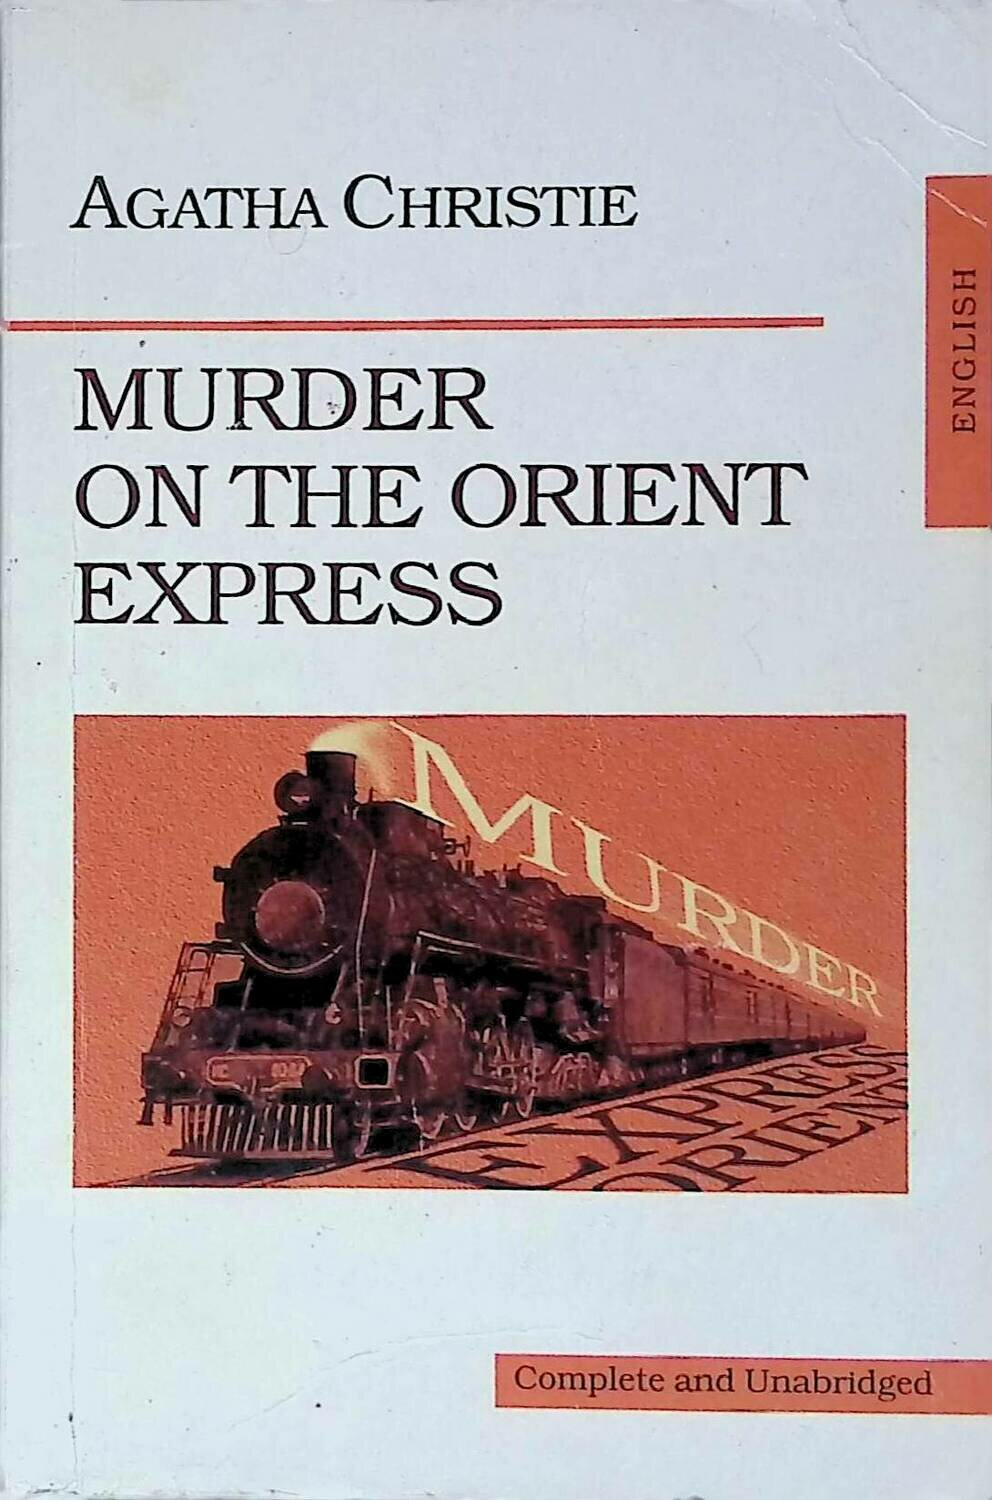 Murder on the Orient Express; Агата Кристи